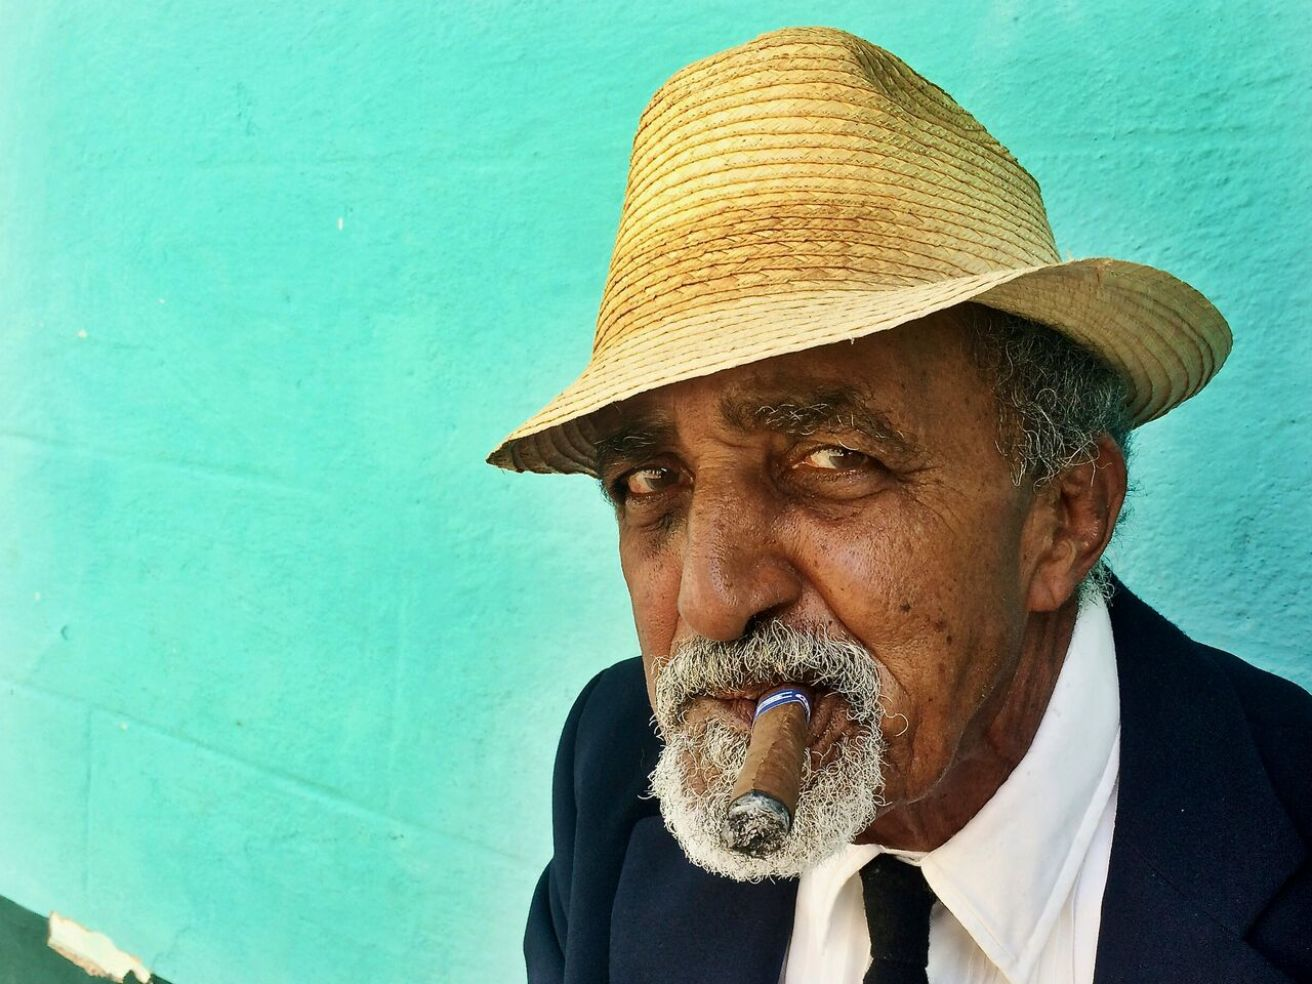 man with a cigar and a hat in Cuba